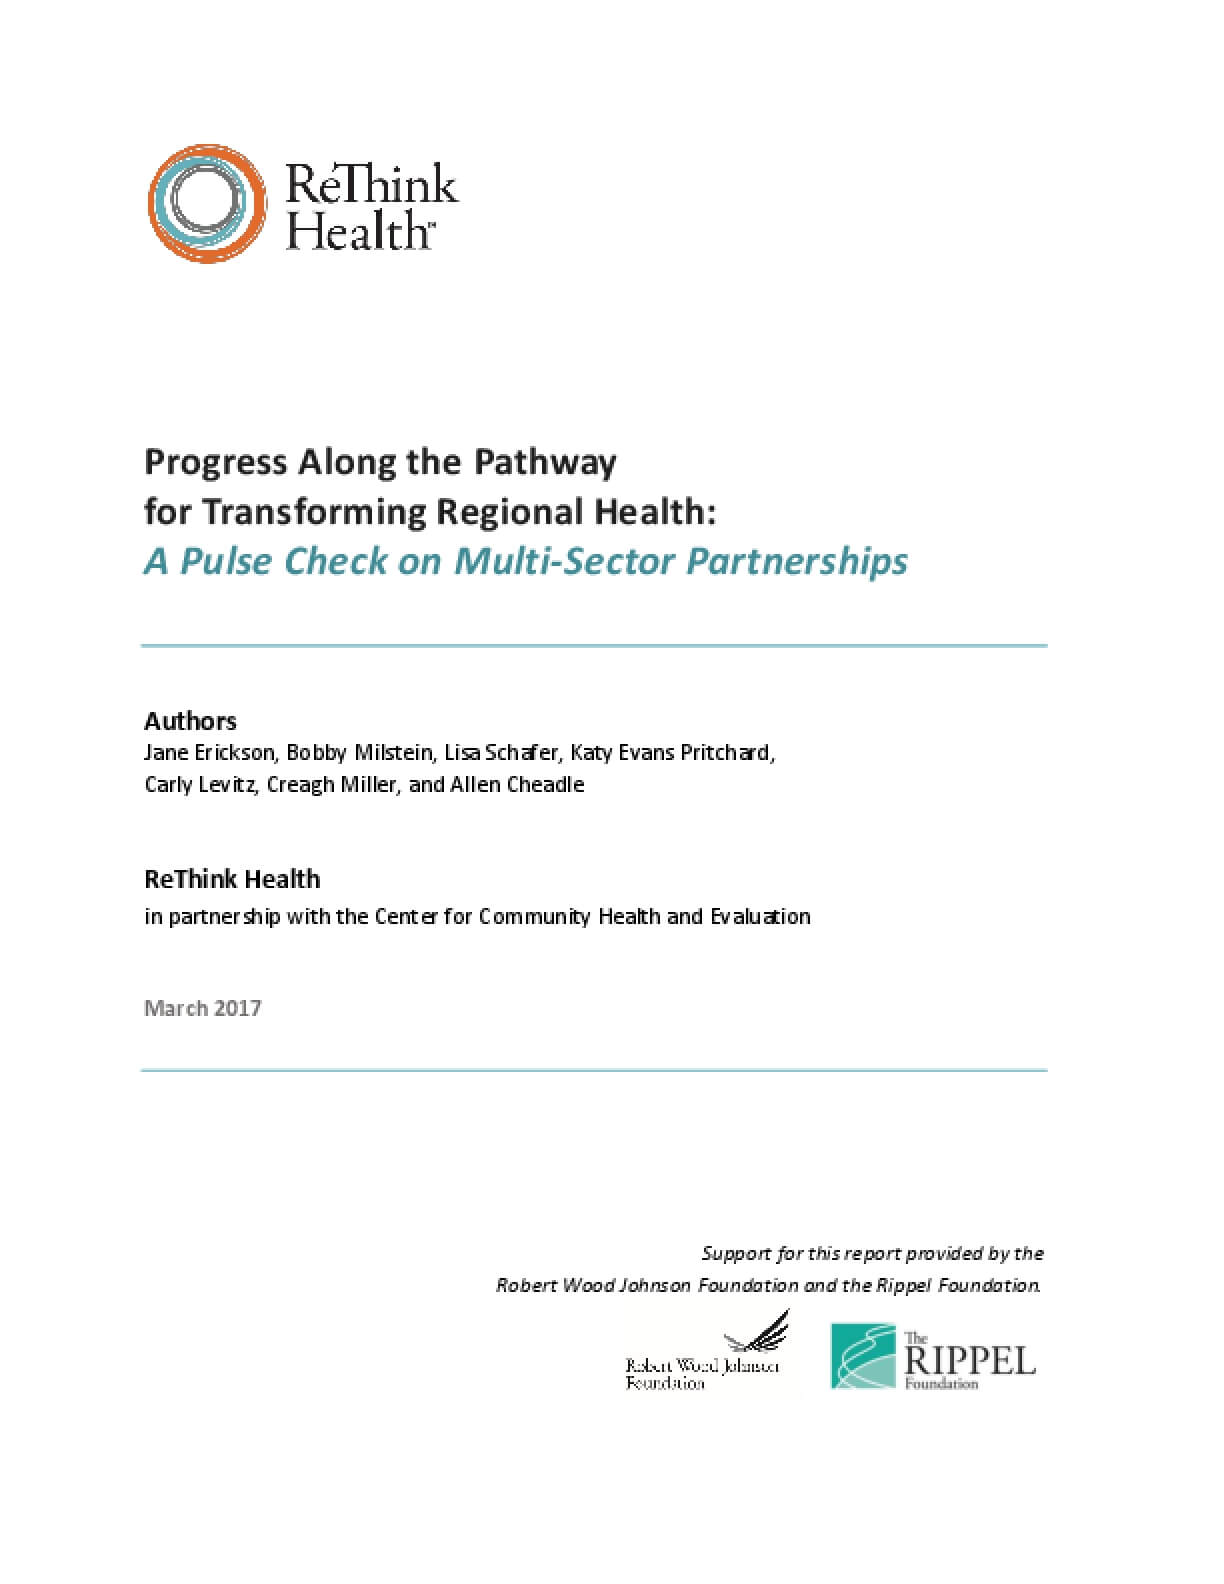 Progress Along the Pathway for Transforming Regional Health: A Pulse Check on Multi-Sector Partnerships